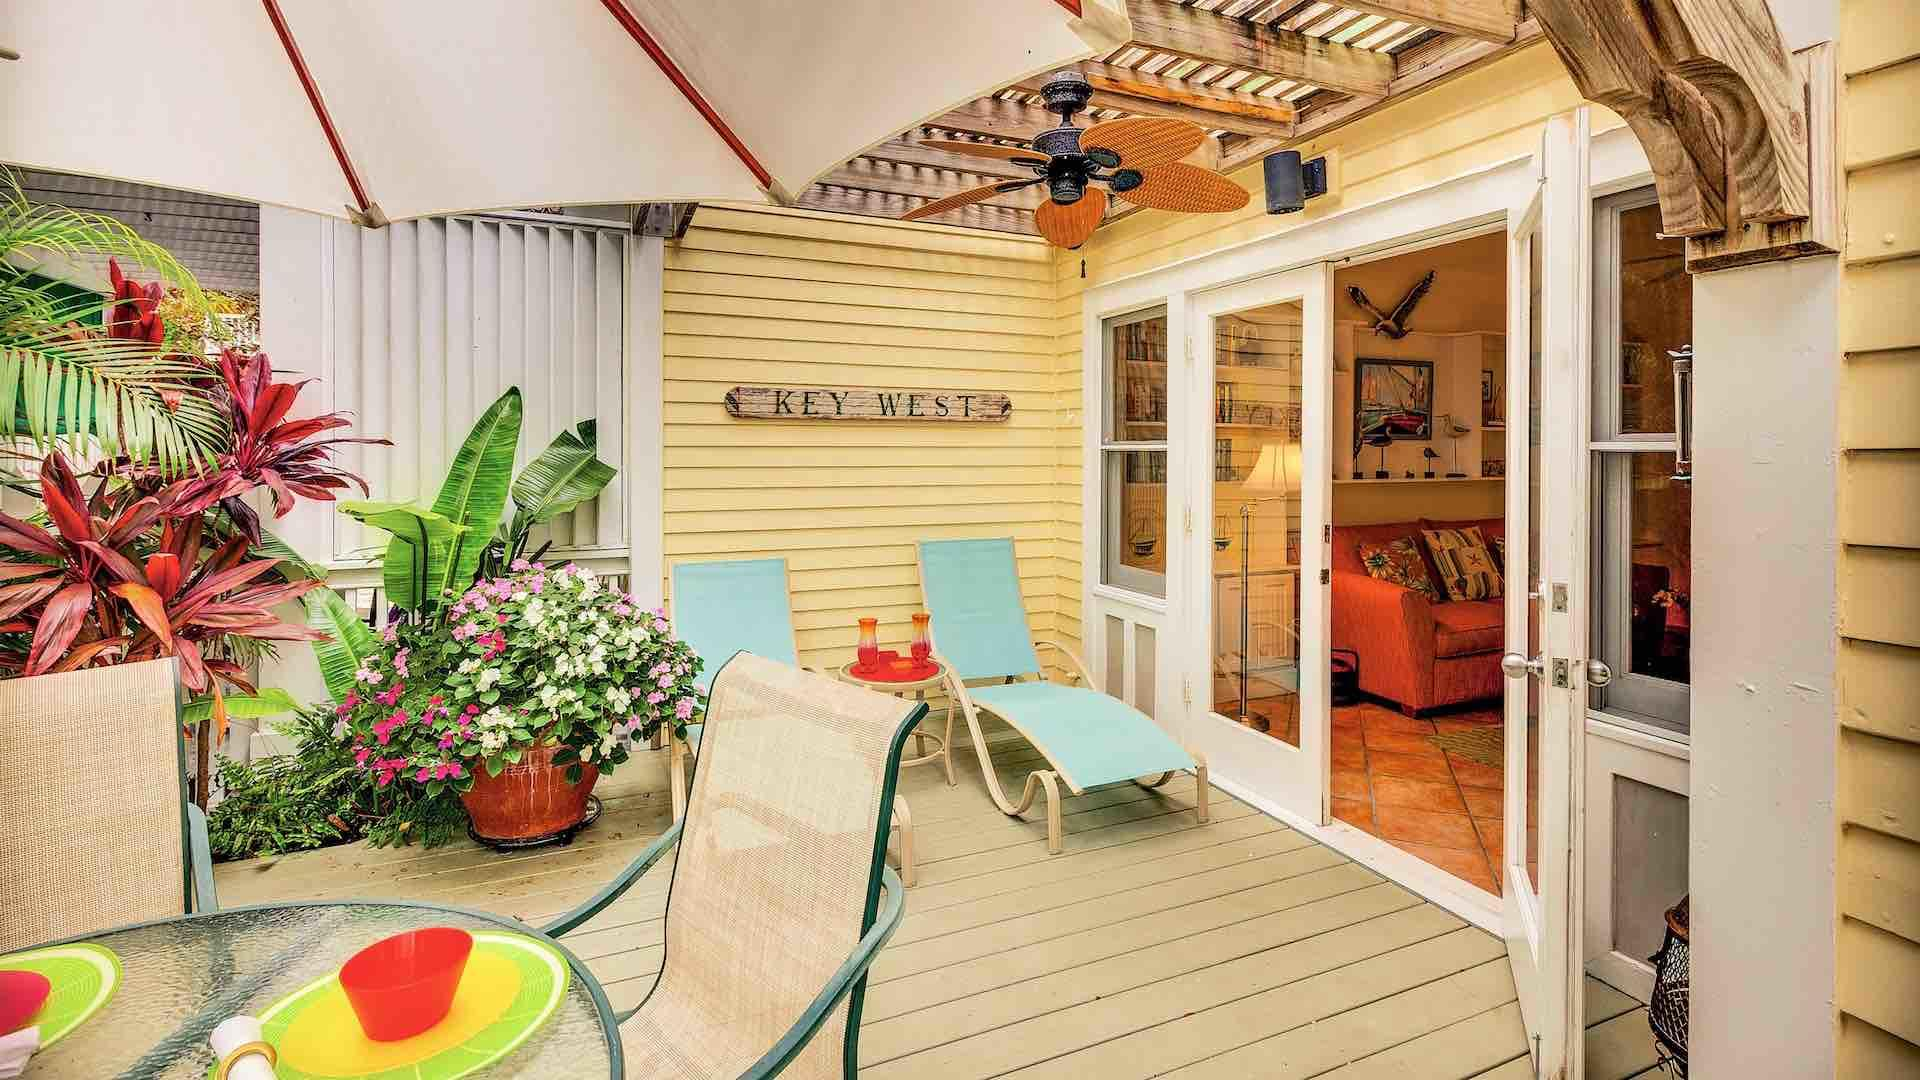 Enjoy some fun in the sun on your own private back patio...